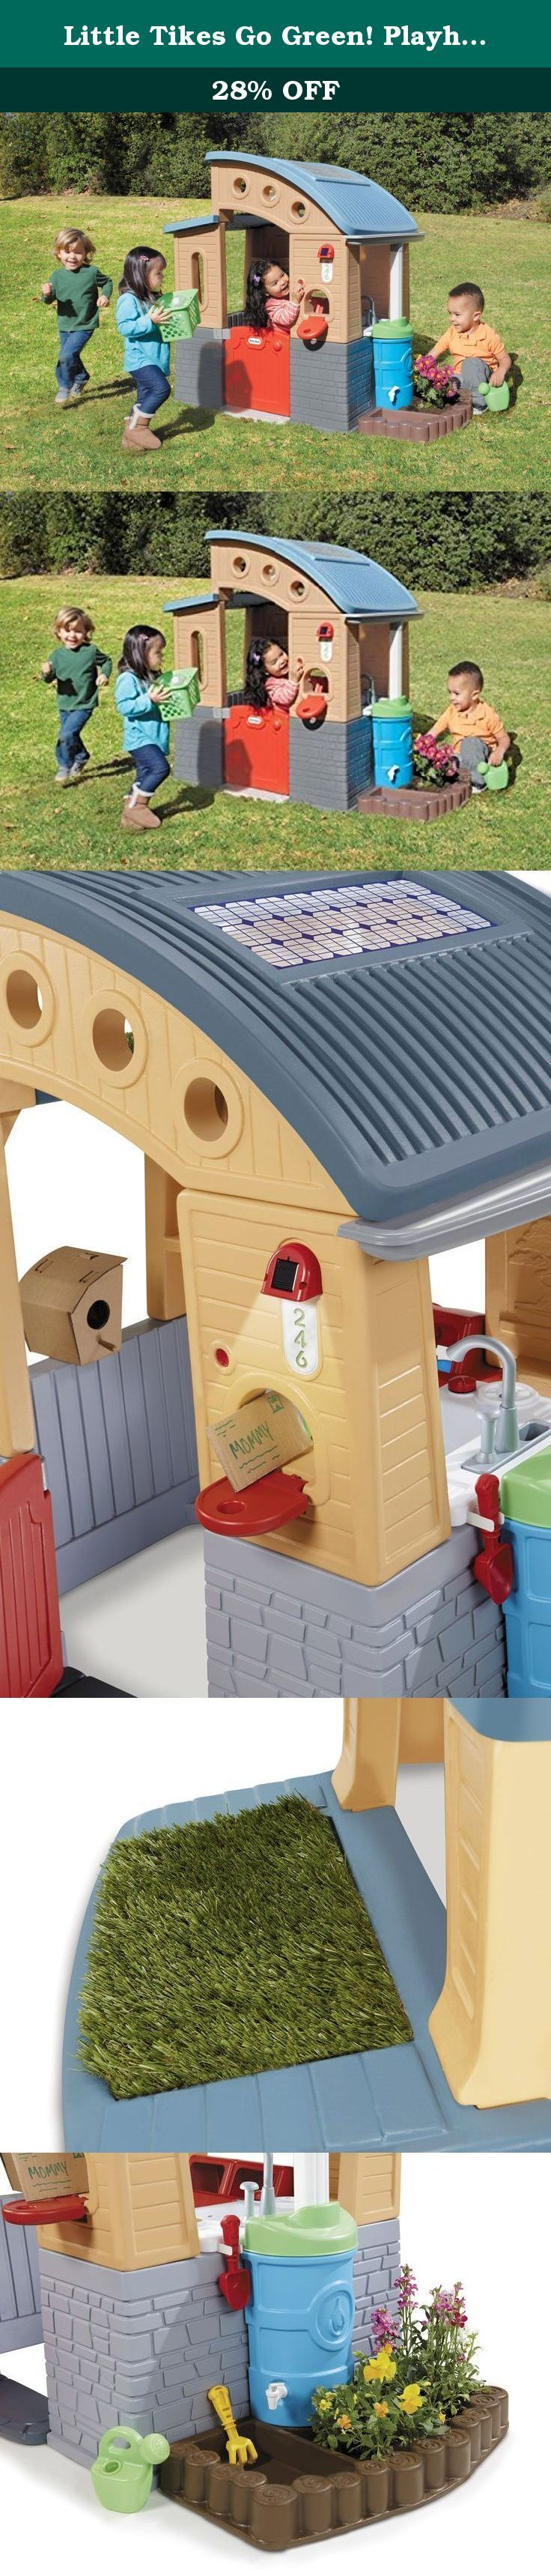 Little Tikes Go Green! Playhouse. Teach your kids about recycling and saving the environment with this toddler clubhouse! Made with 10% recycled plastic, the Go Green! Playhouse is filled with activities that will encourage your child to help his or her environment. The house is equipped with solar panel power energy-efficient LED lights to allow extra light inside. Your little ones will learn about recycling water with both the pump sink and attached rain barrel. The planting box and…